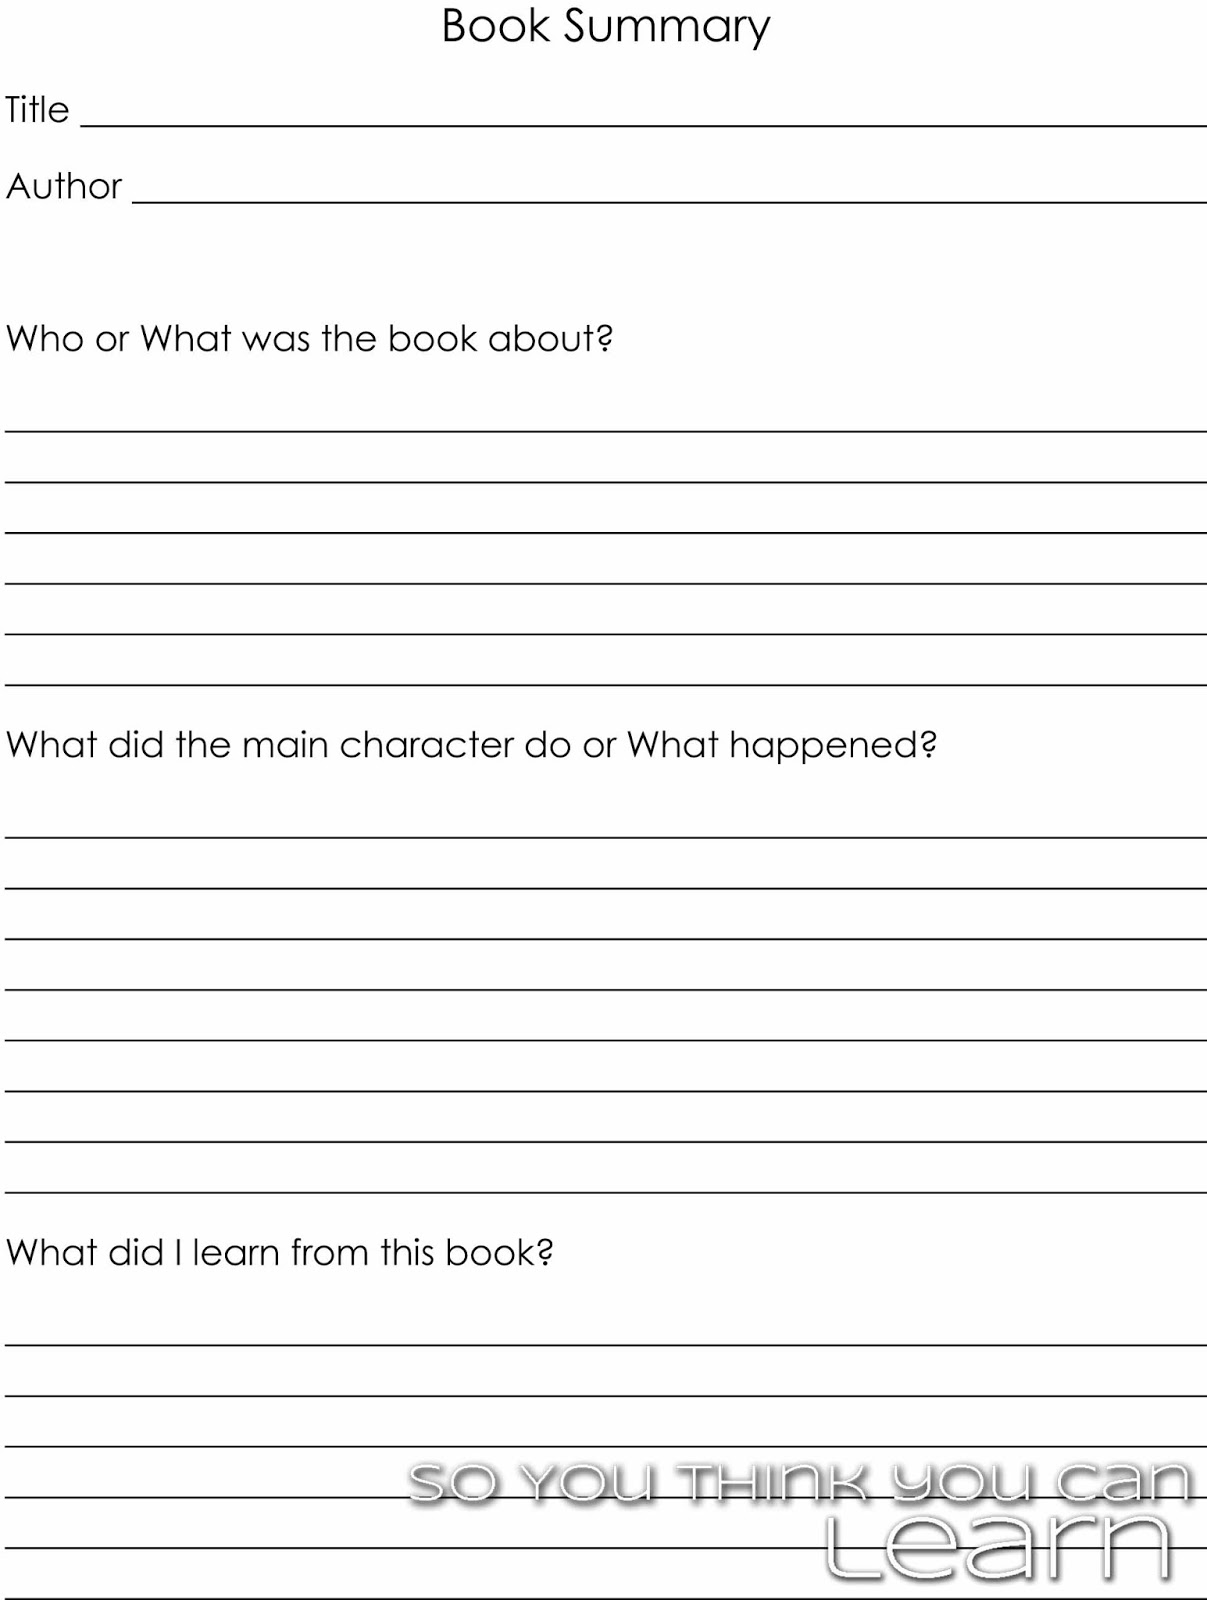 Book Chapter Summary Template moreover blank chapter summary worksheet